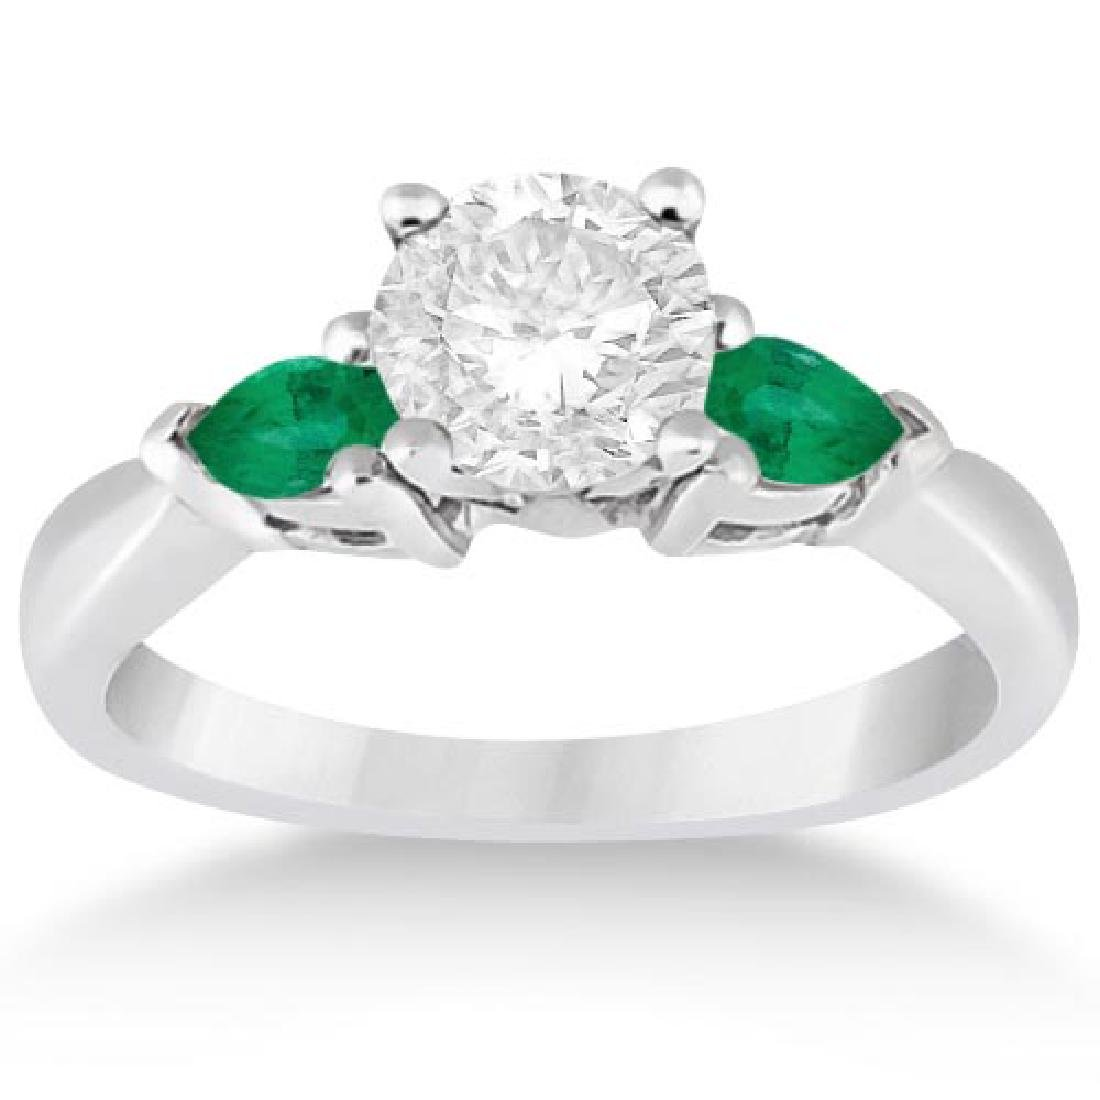 Pear Cut Three Stone Emerald Engagement Ring 14k White